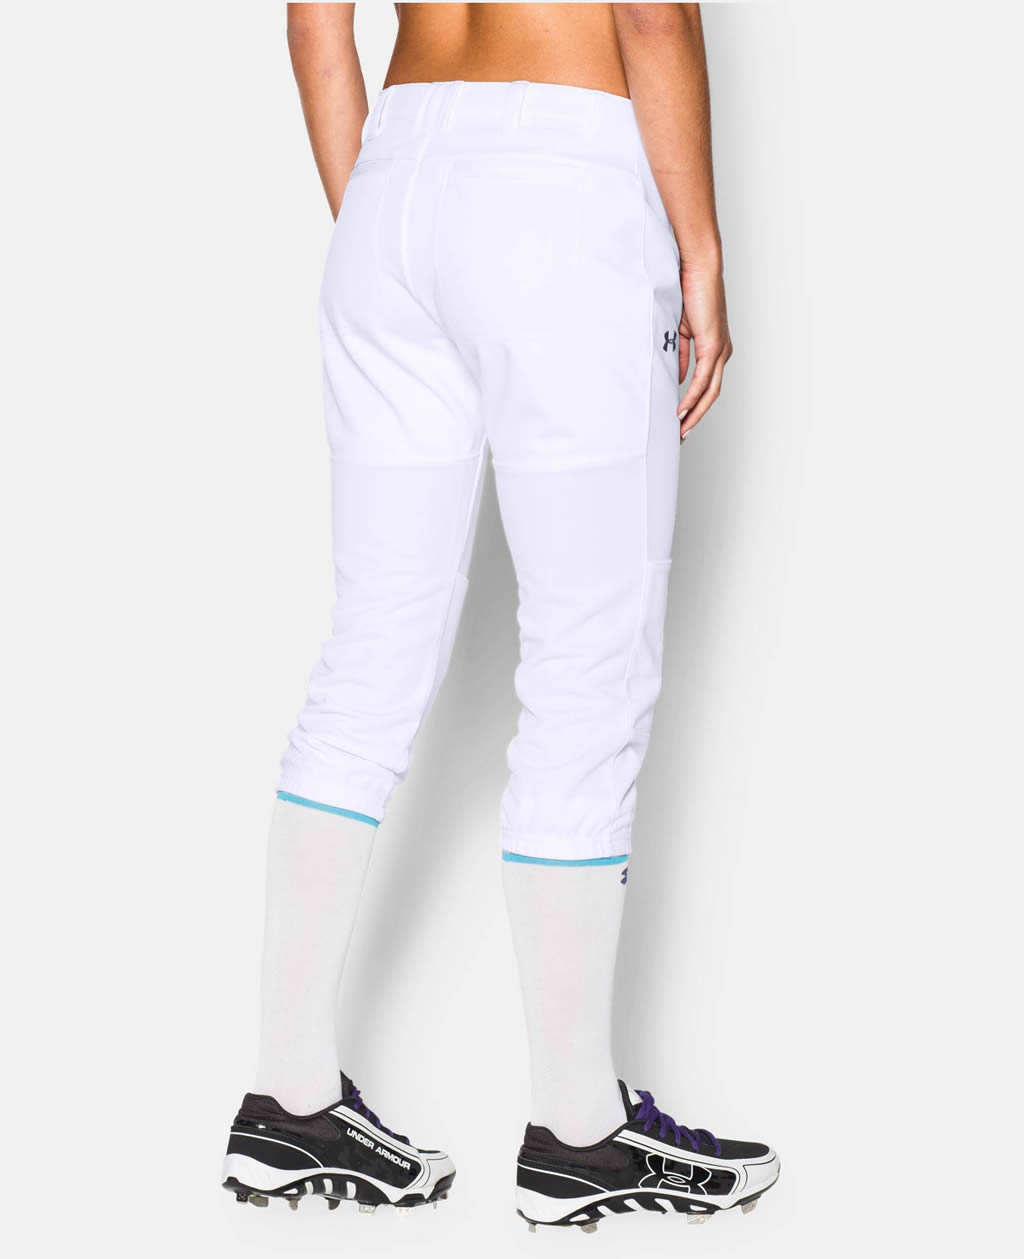 White Women's Strike Zone Pant By UA